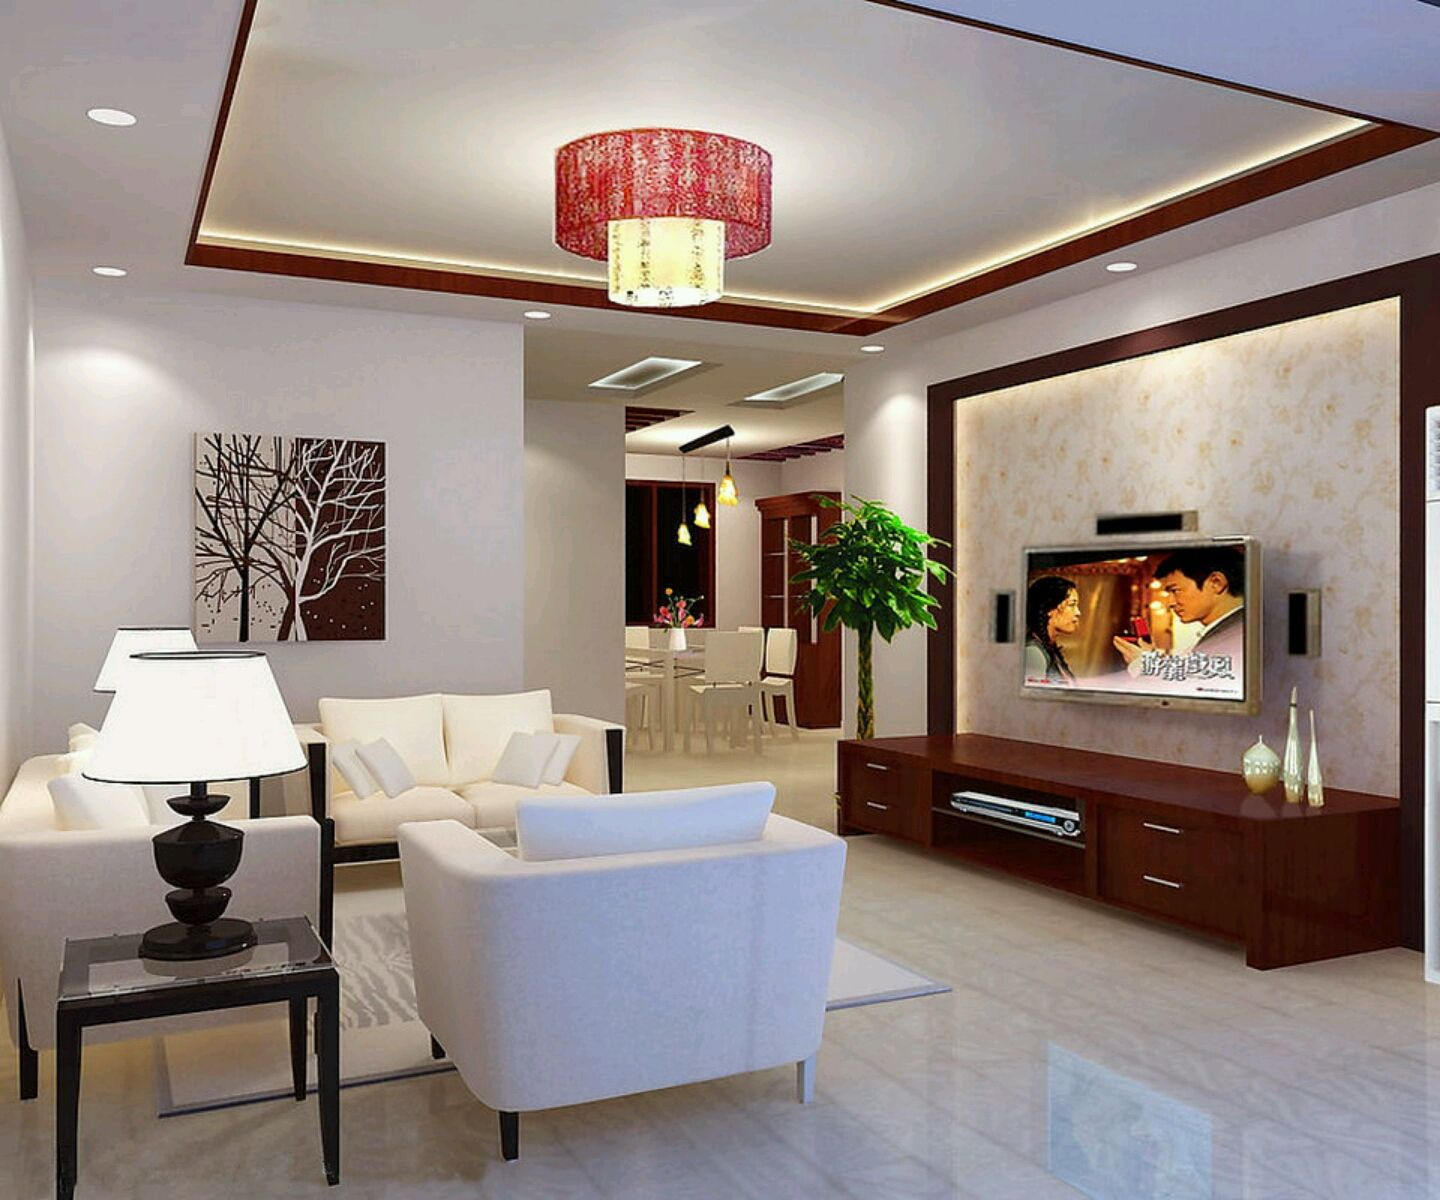 Ceiling Designs 20 Inspiring Ceiling Design Ideas For Your Next Home Makeover